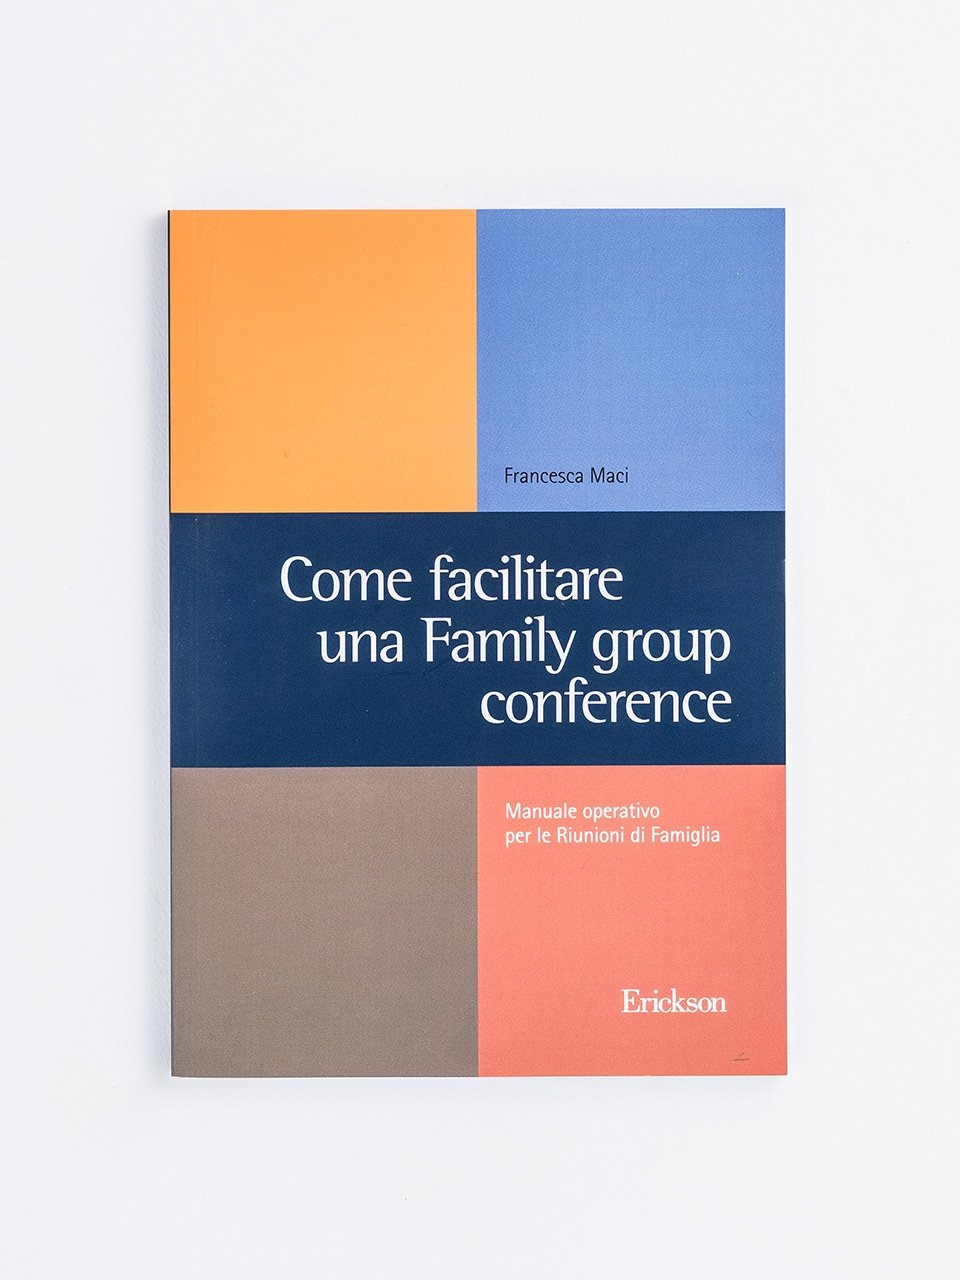 Come facilitare una Family group conference - Amicizia, amore, sesso: parliamone adesso - Libri - Erickson